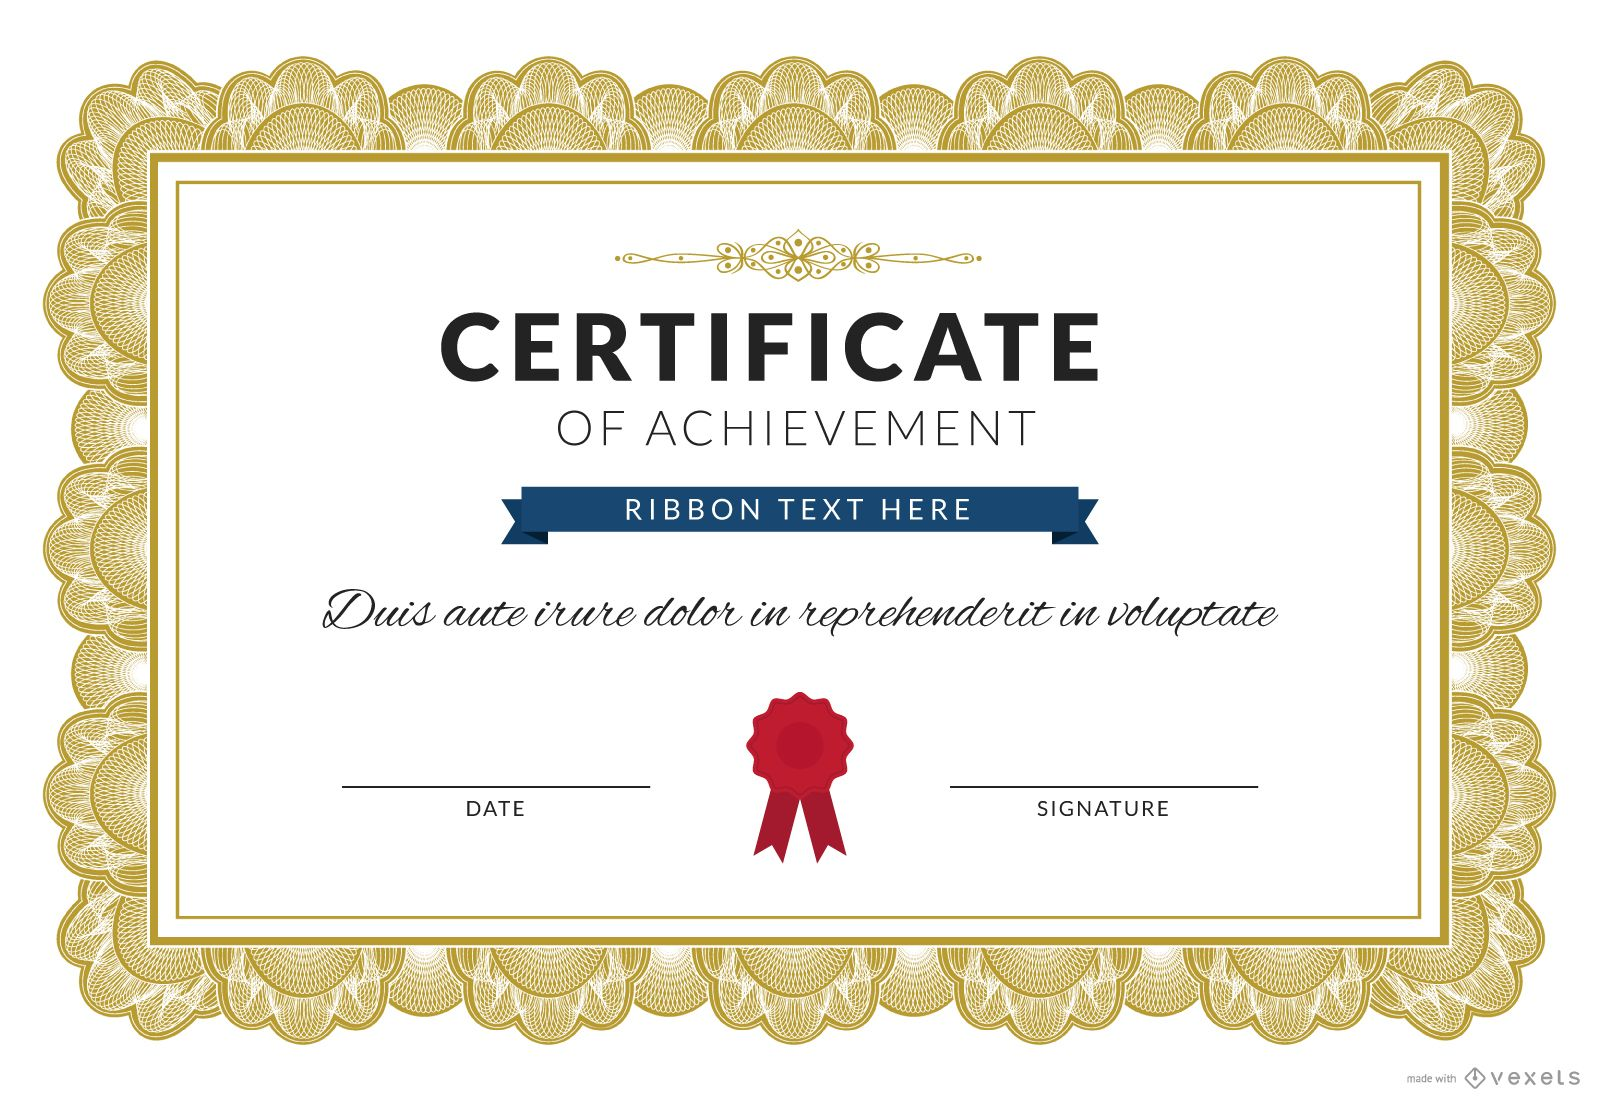 Certificate vector graphics to download certificate of achievement maker 1betcityfo Gallery